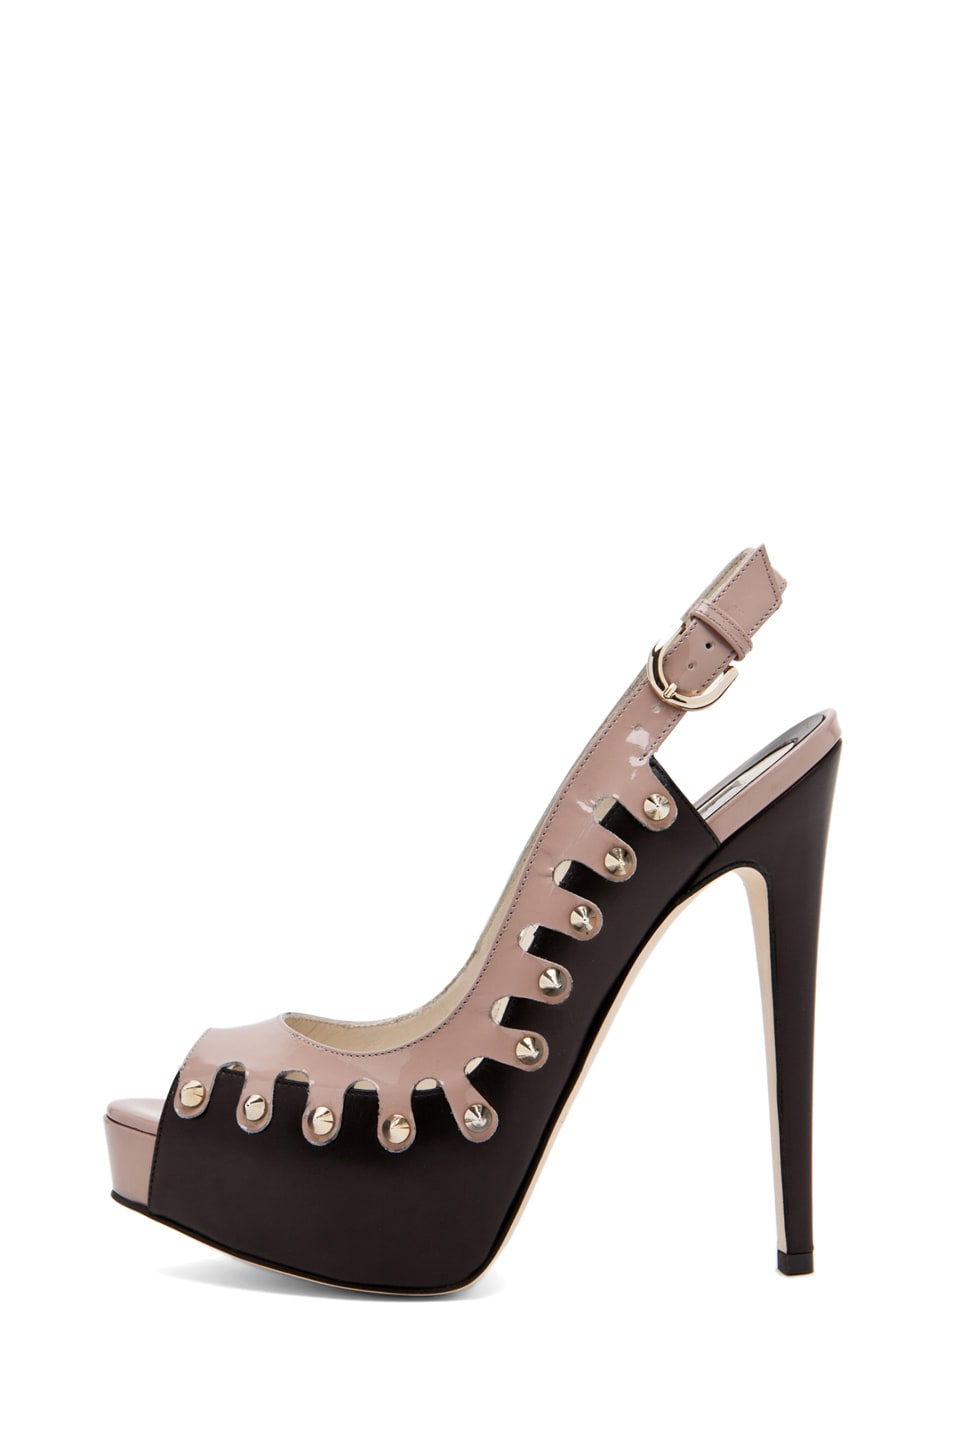 Image 1 of Brian Atwood Neela in Black/Cappuccino Nude